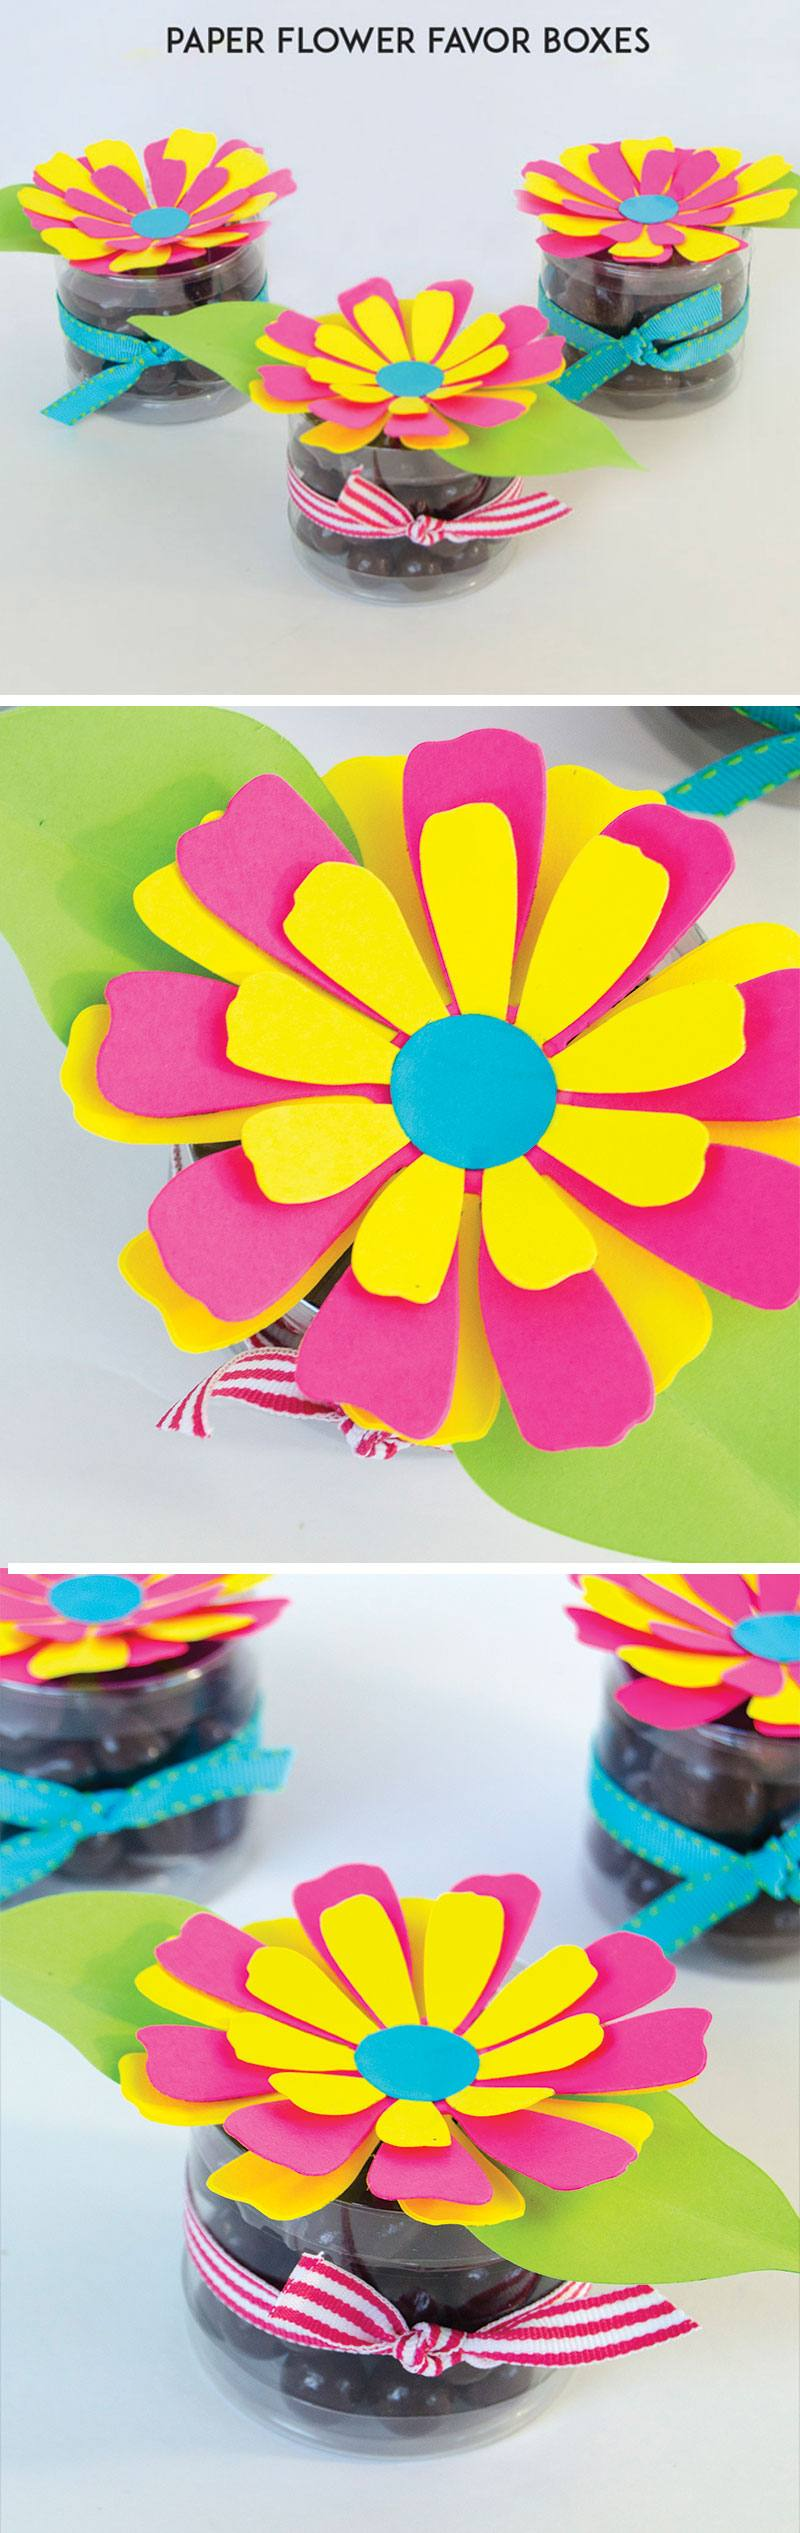 Paper Flower Favor Box Tutorial & MY FIRST VIDEO by Lindi Haws of Love The Day